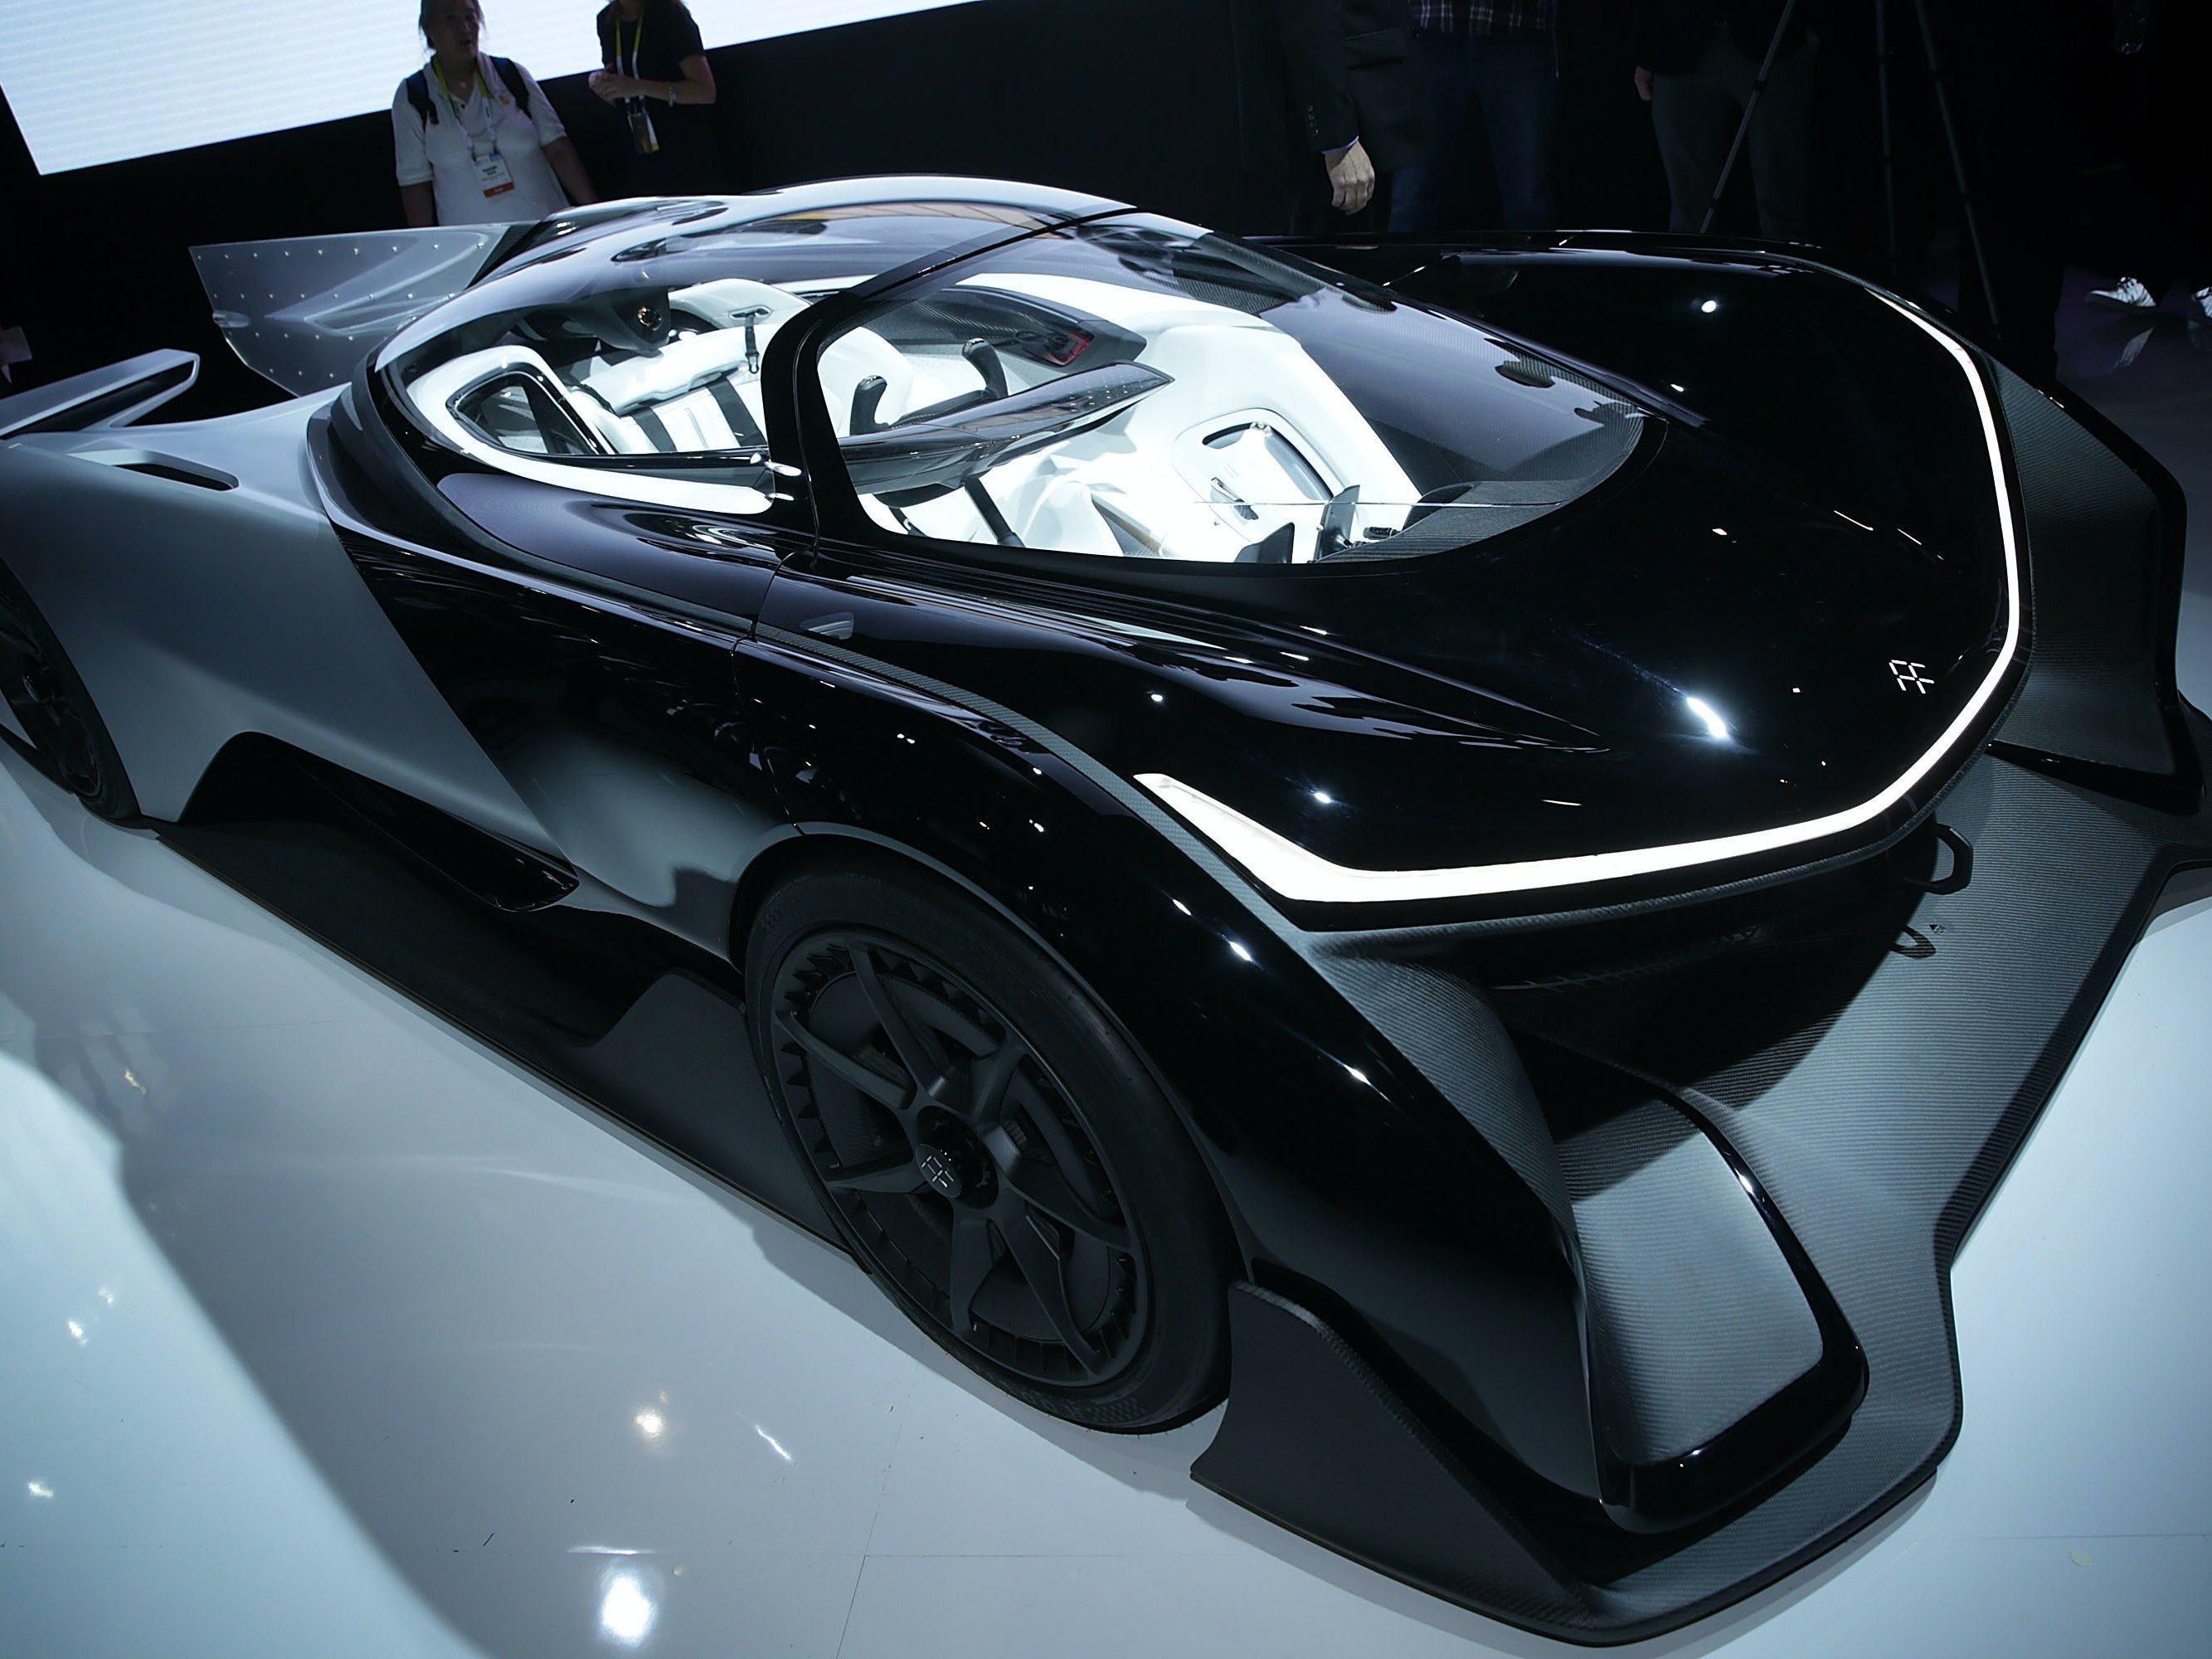 The Faraday concept car unveiled in January at CES.